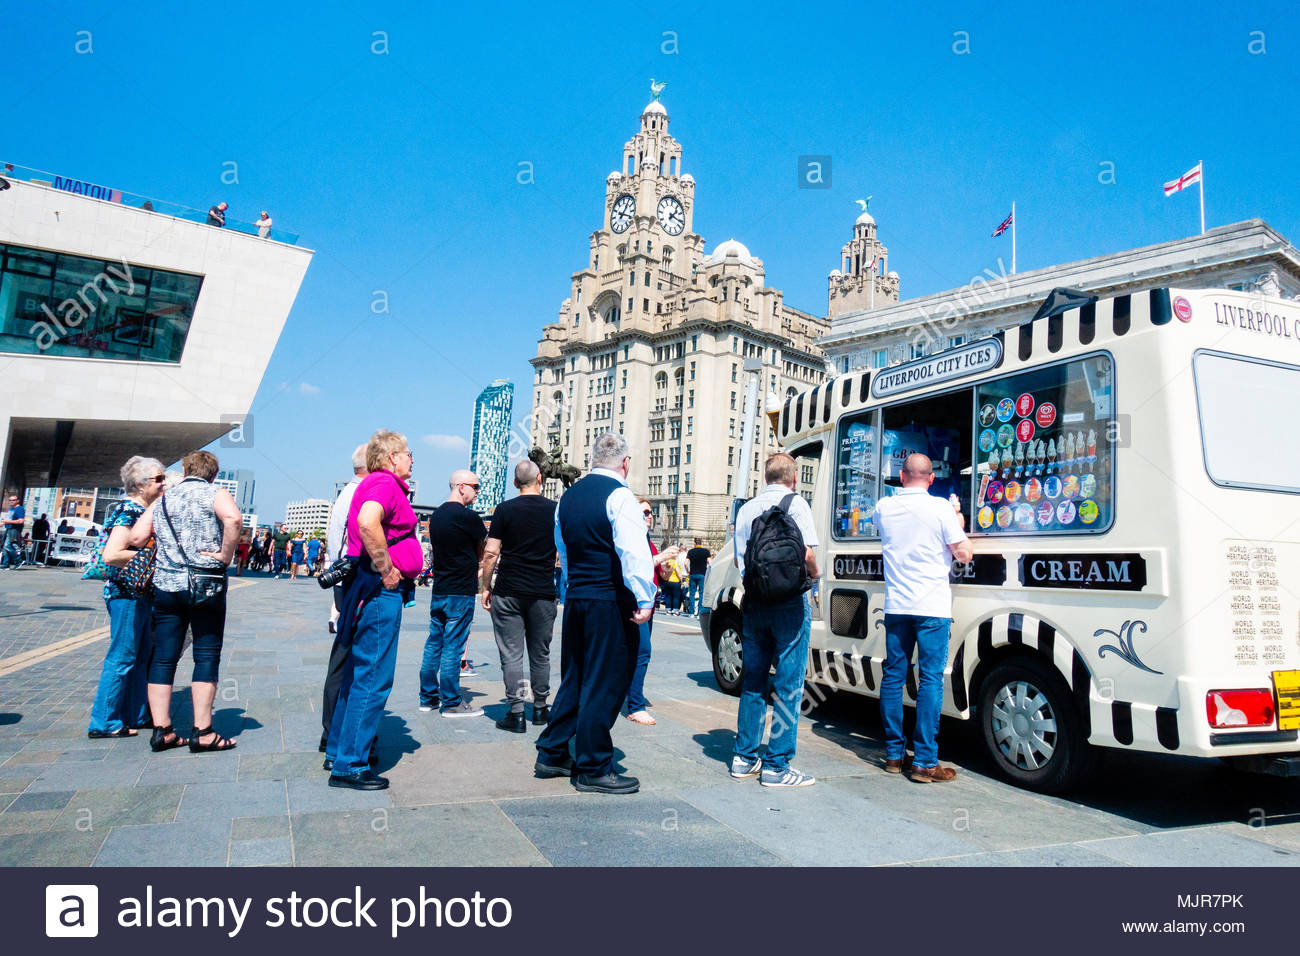 Pier Head in Liverpool, on the banks of the River Mersey, people queue to buy an Ice Cream to col down on the unusually hot day, in front of the Liver Building, on a sunny Bank Holiday Weekend, Liverpool, England UK Europe Stock Photo